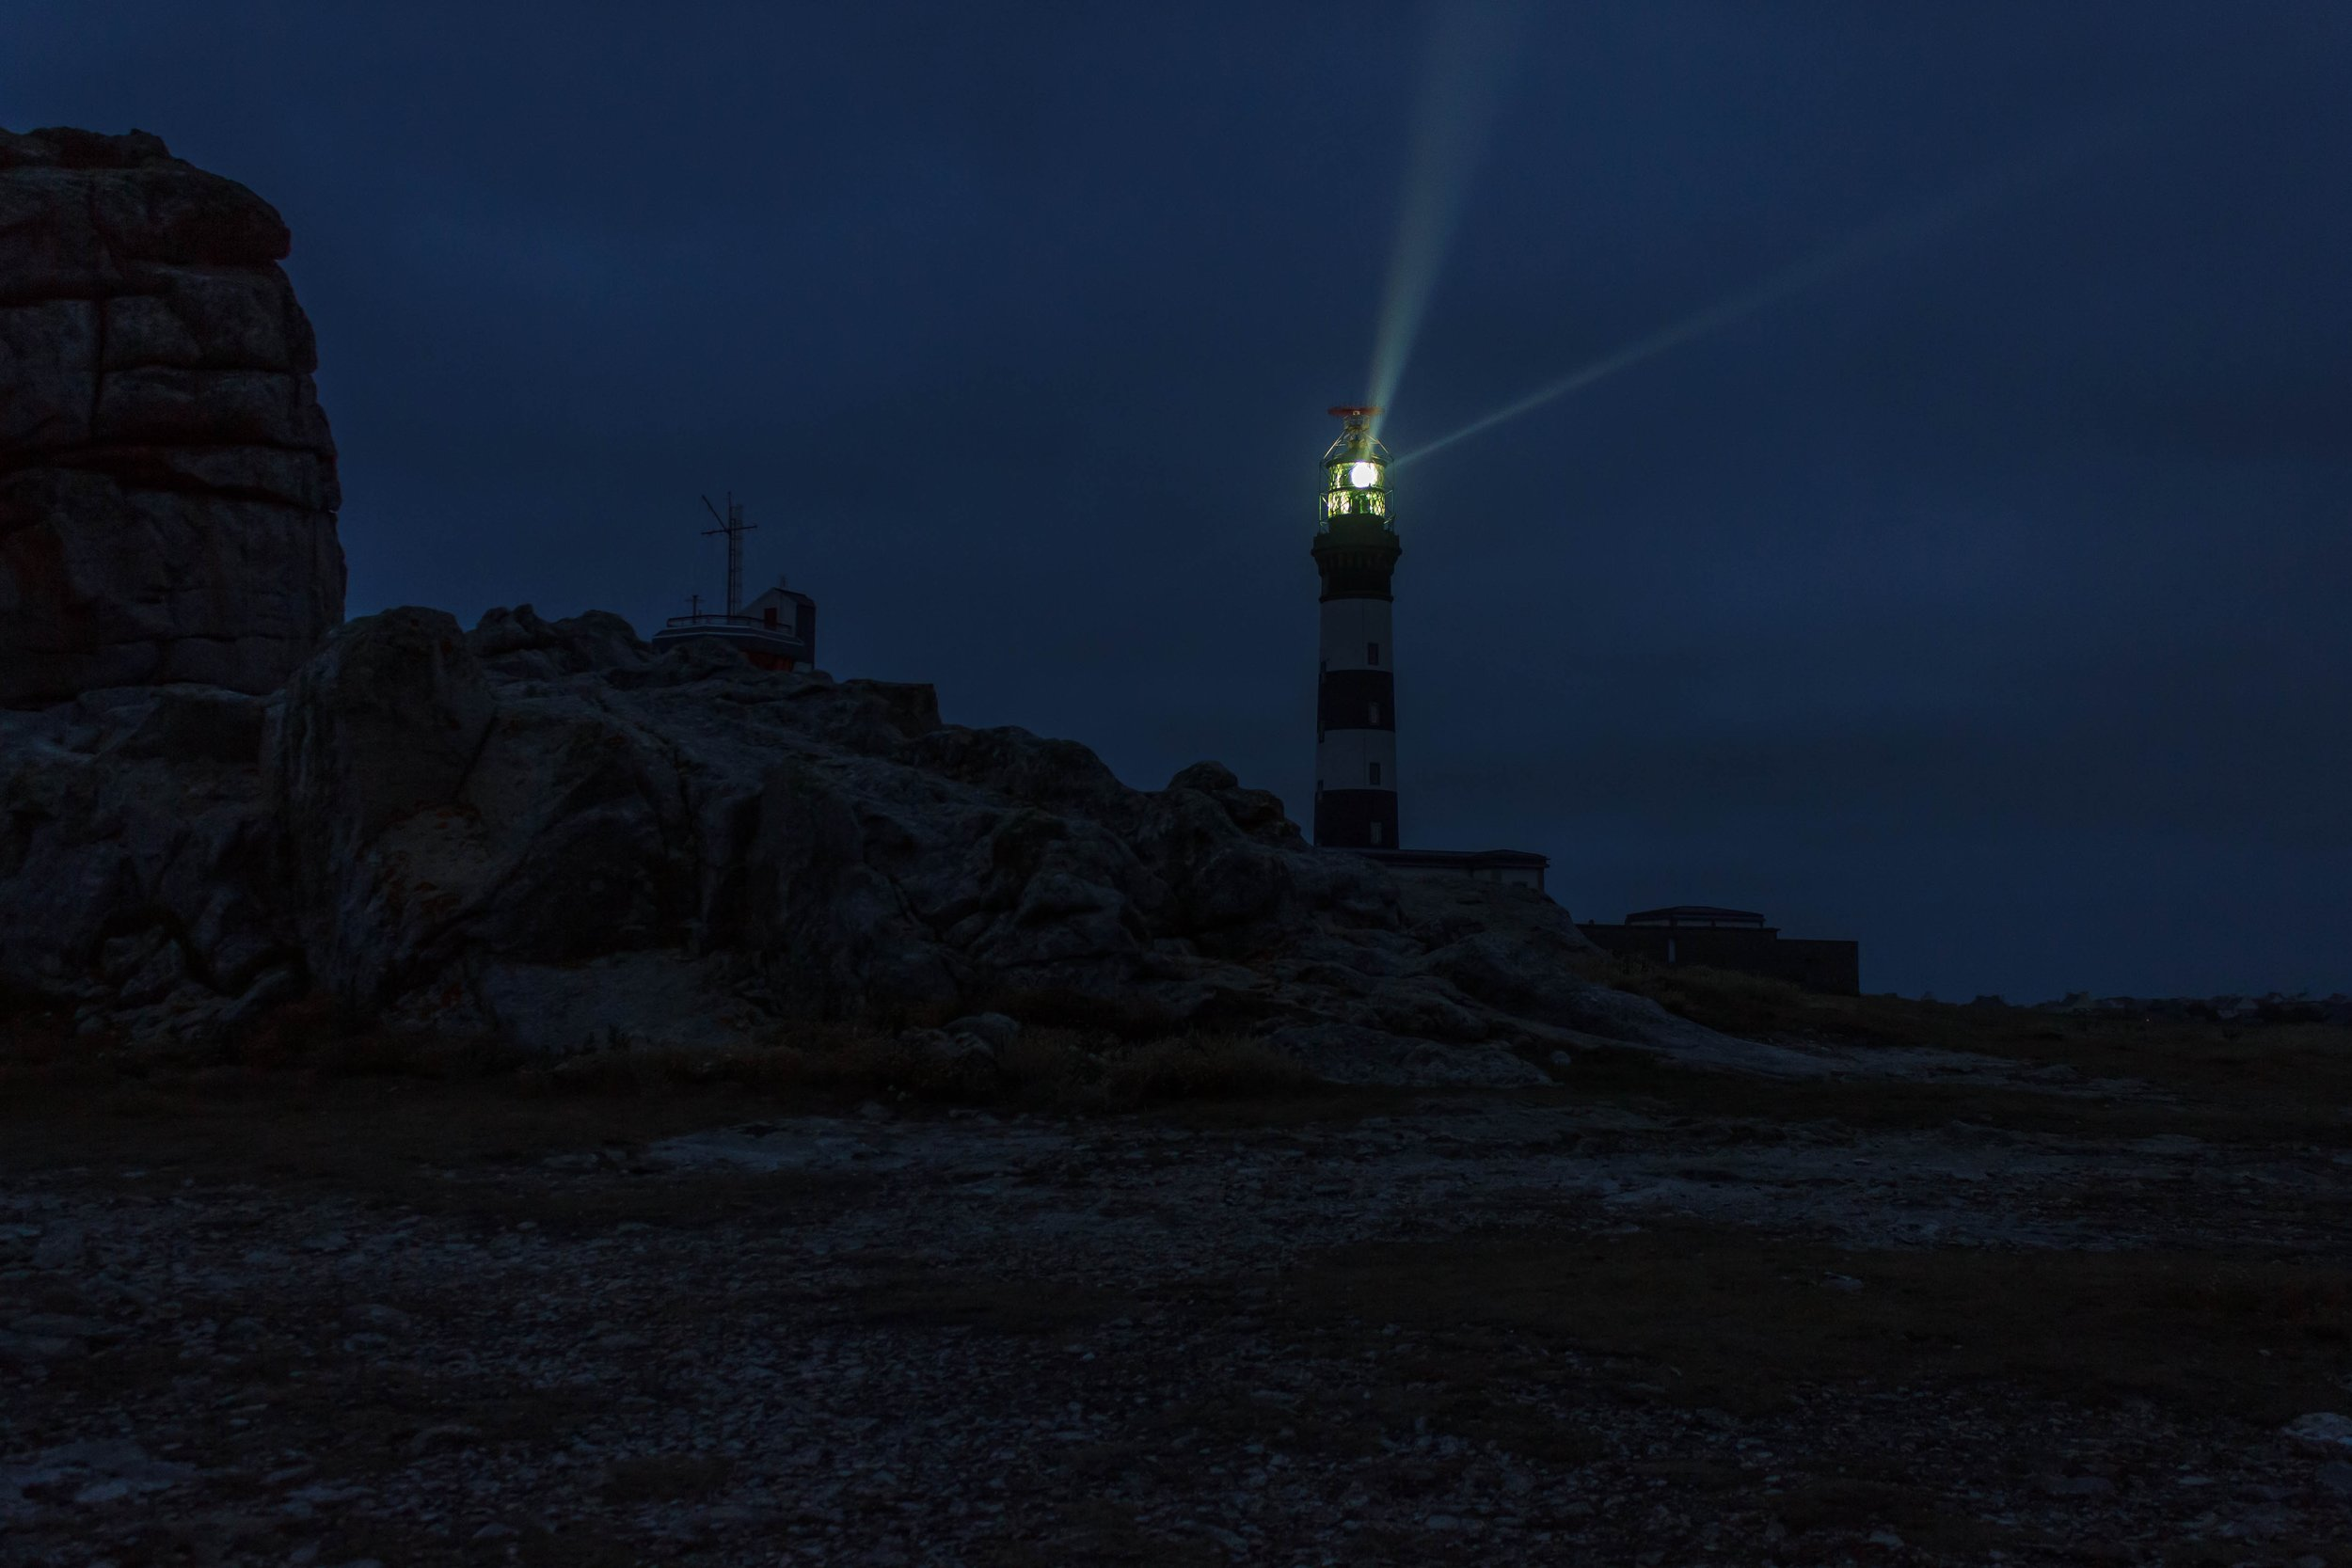 Sometimes we look for the beacon, sometimes we are the beacon.